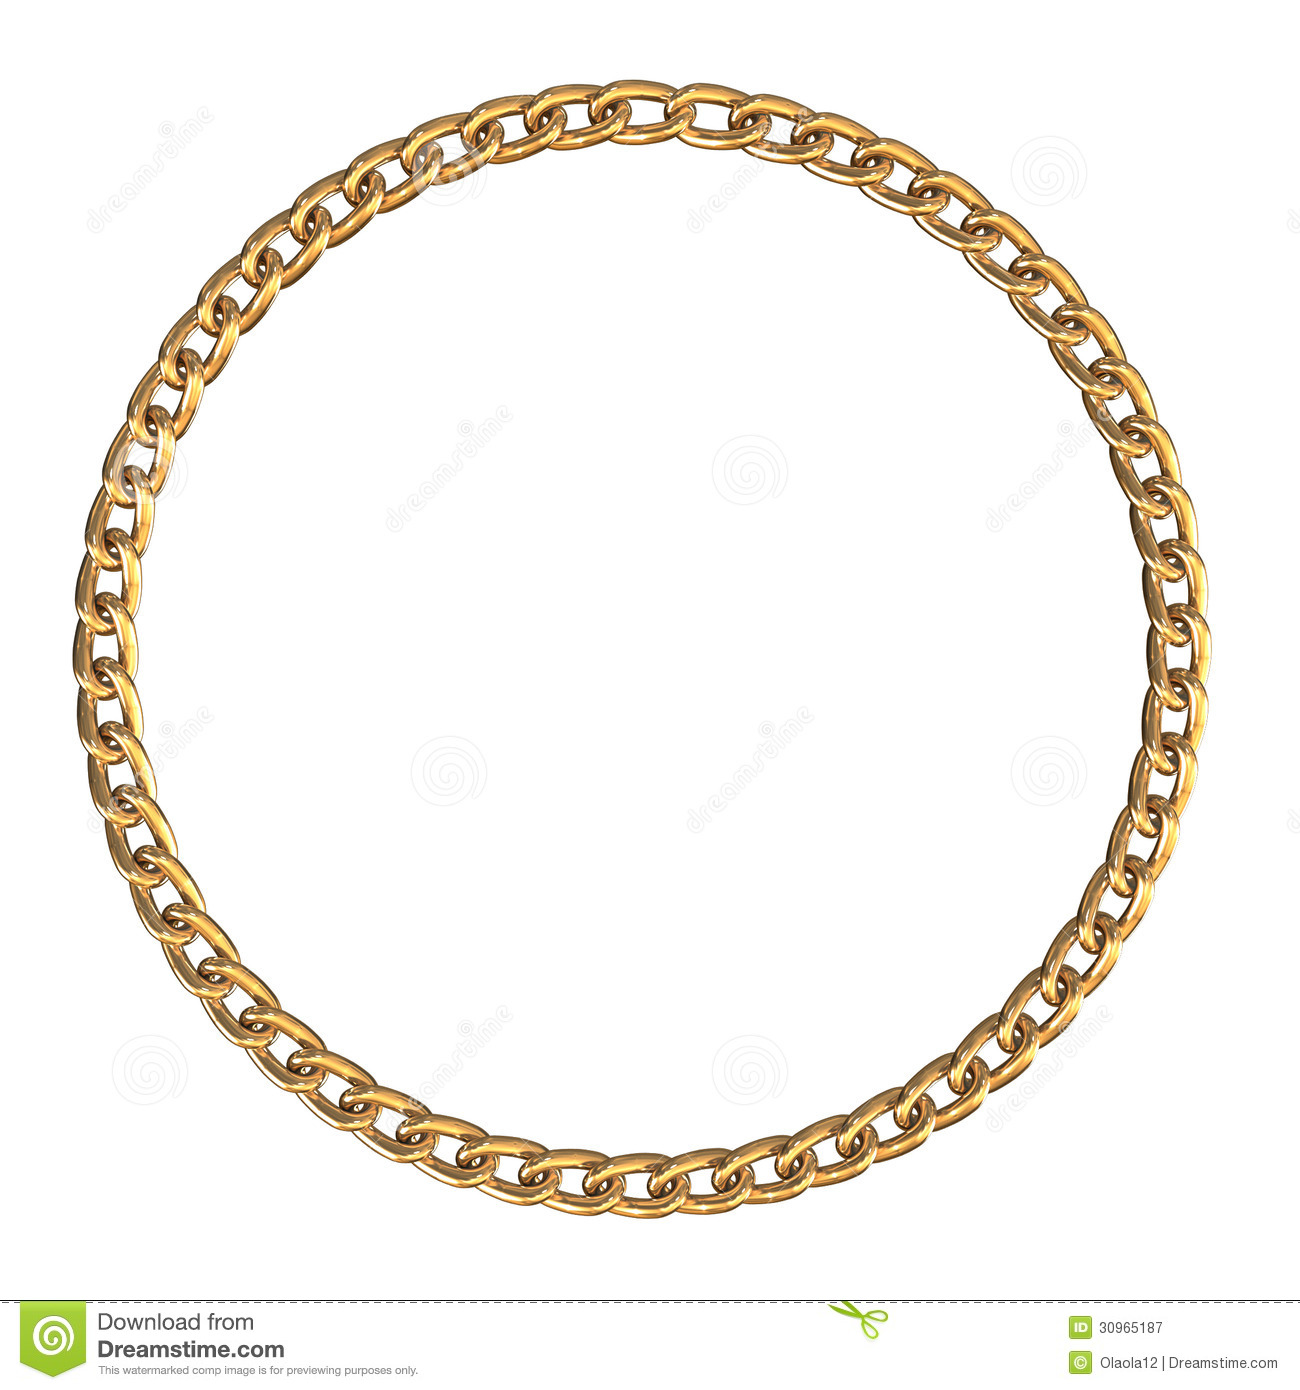 71be239df992 Frame with golden chain stock vector. Illustration of money - 30965187